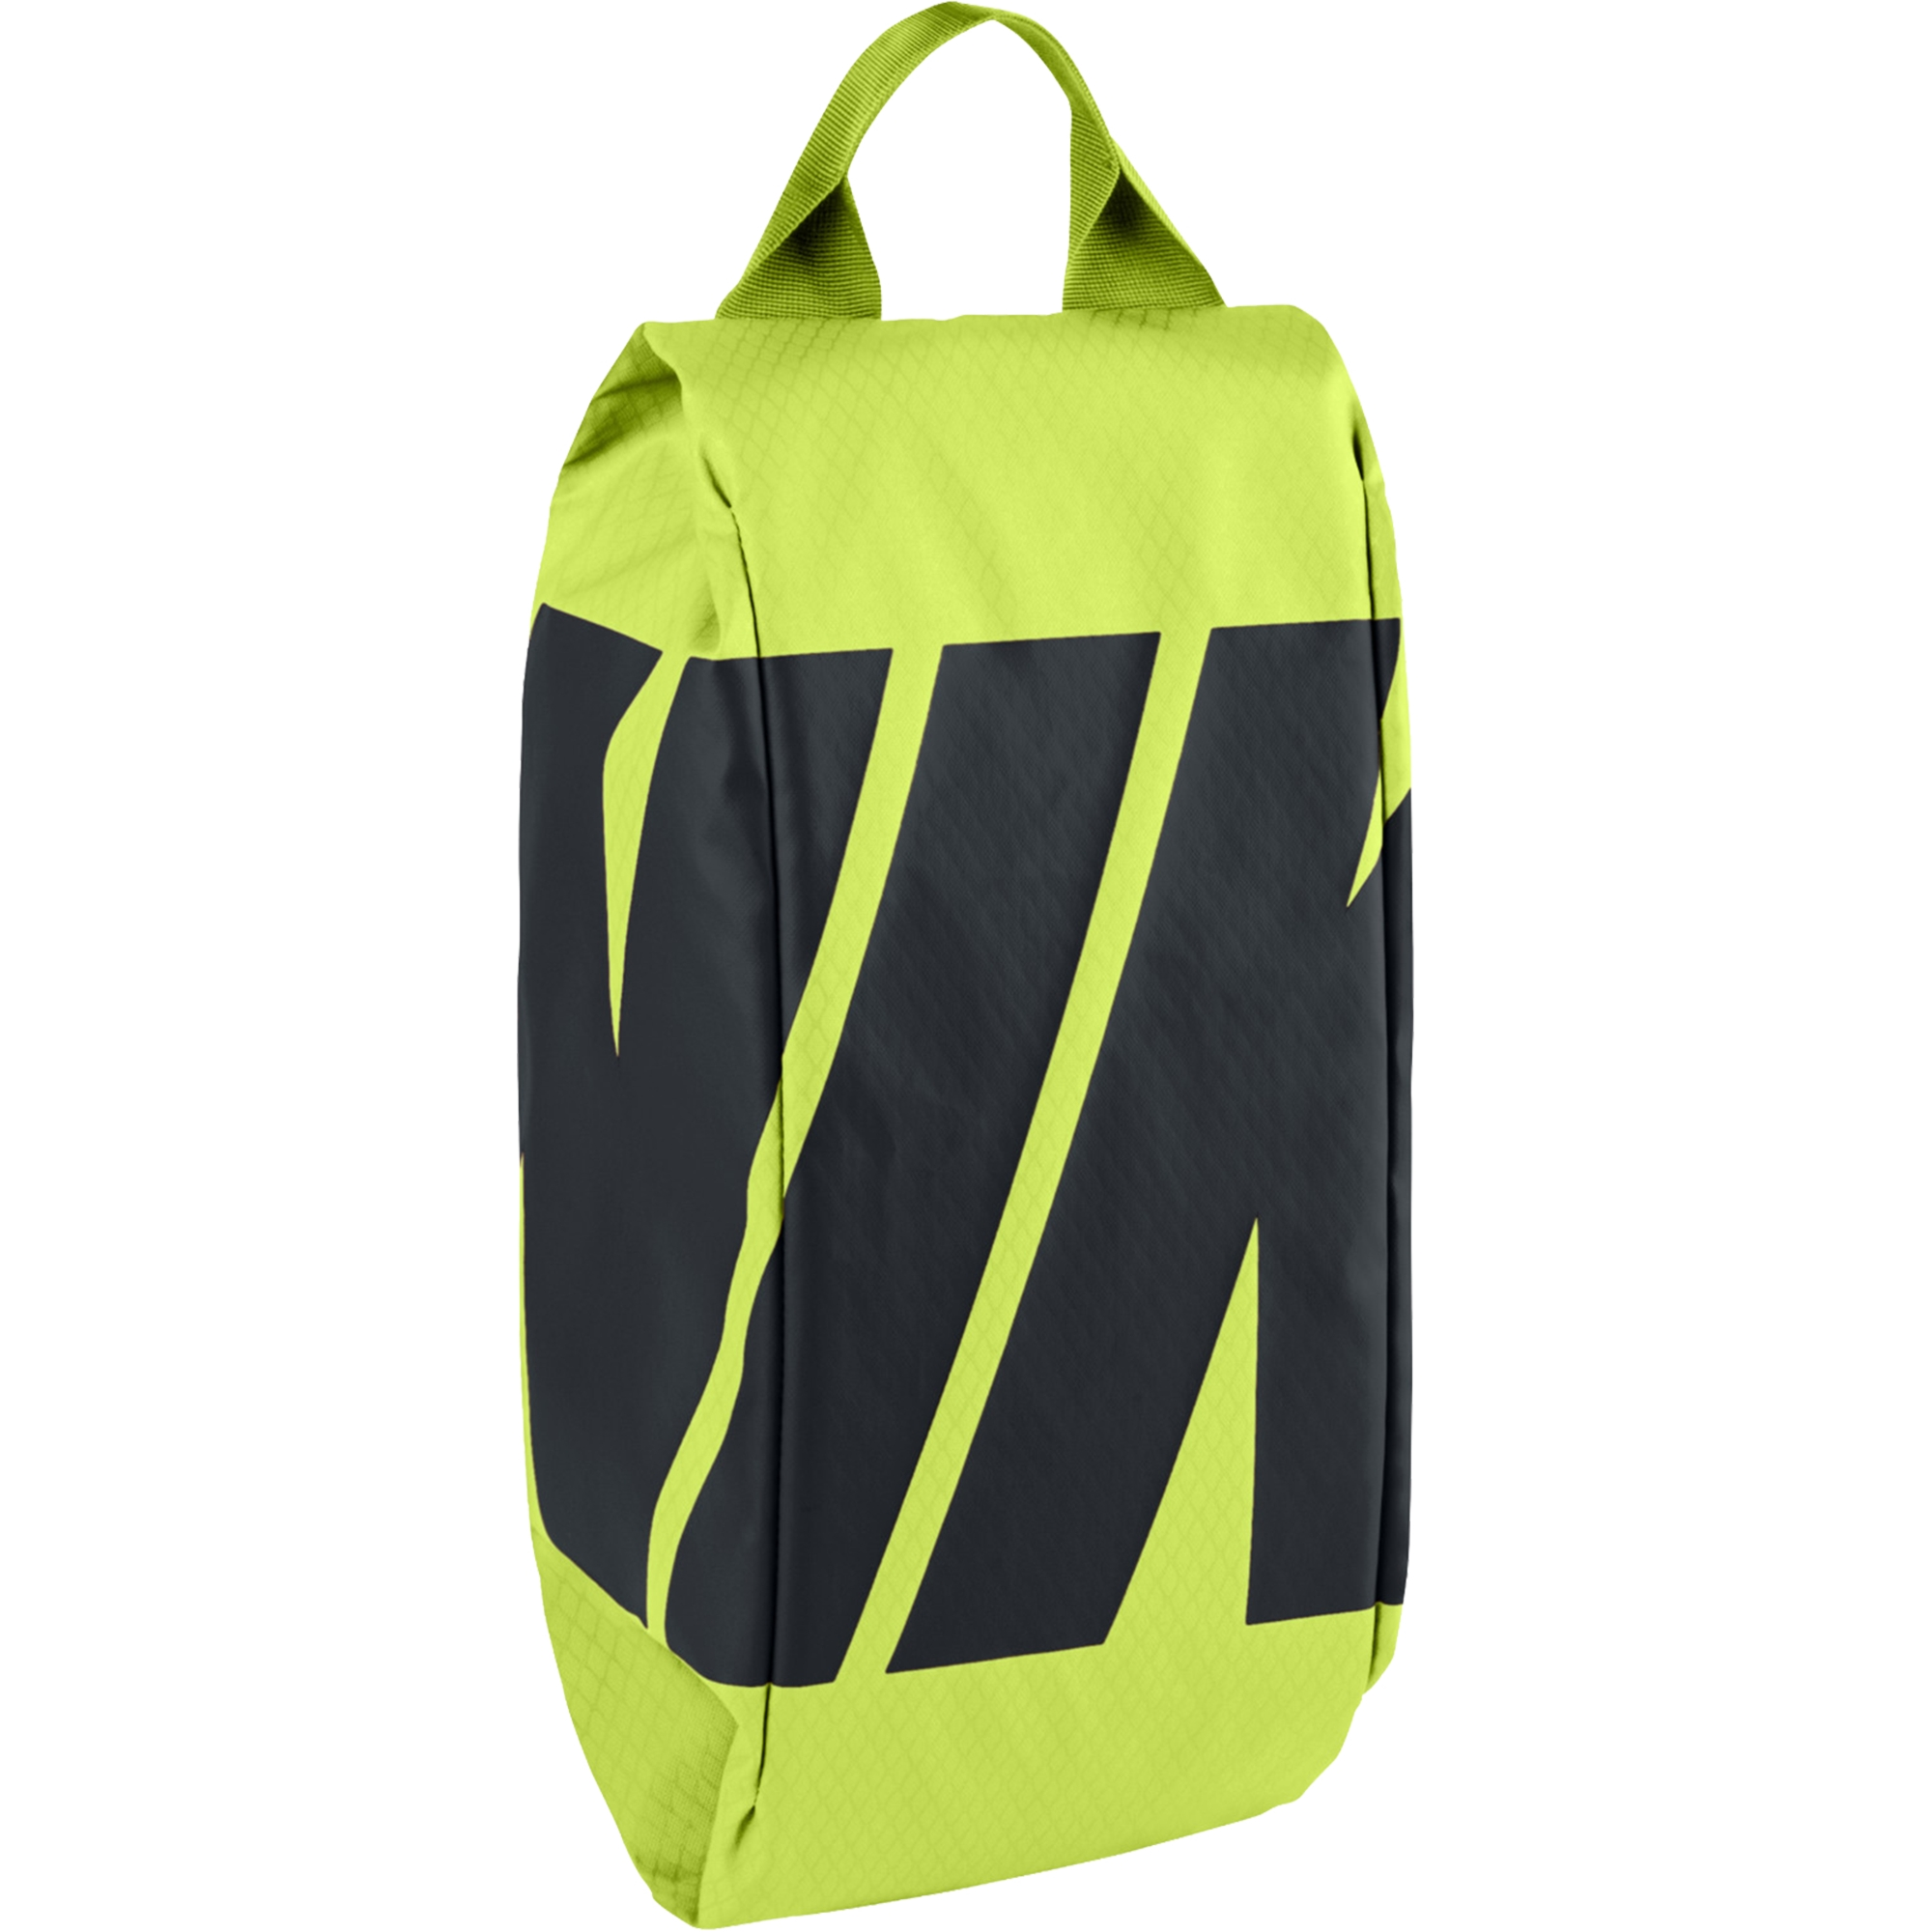 d6e75ac5b2e3 Nike Team Training Shoe Bag FW15 Ayakkabı Çantası  BA4926-717 ...